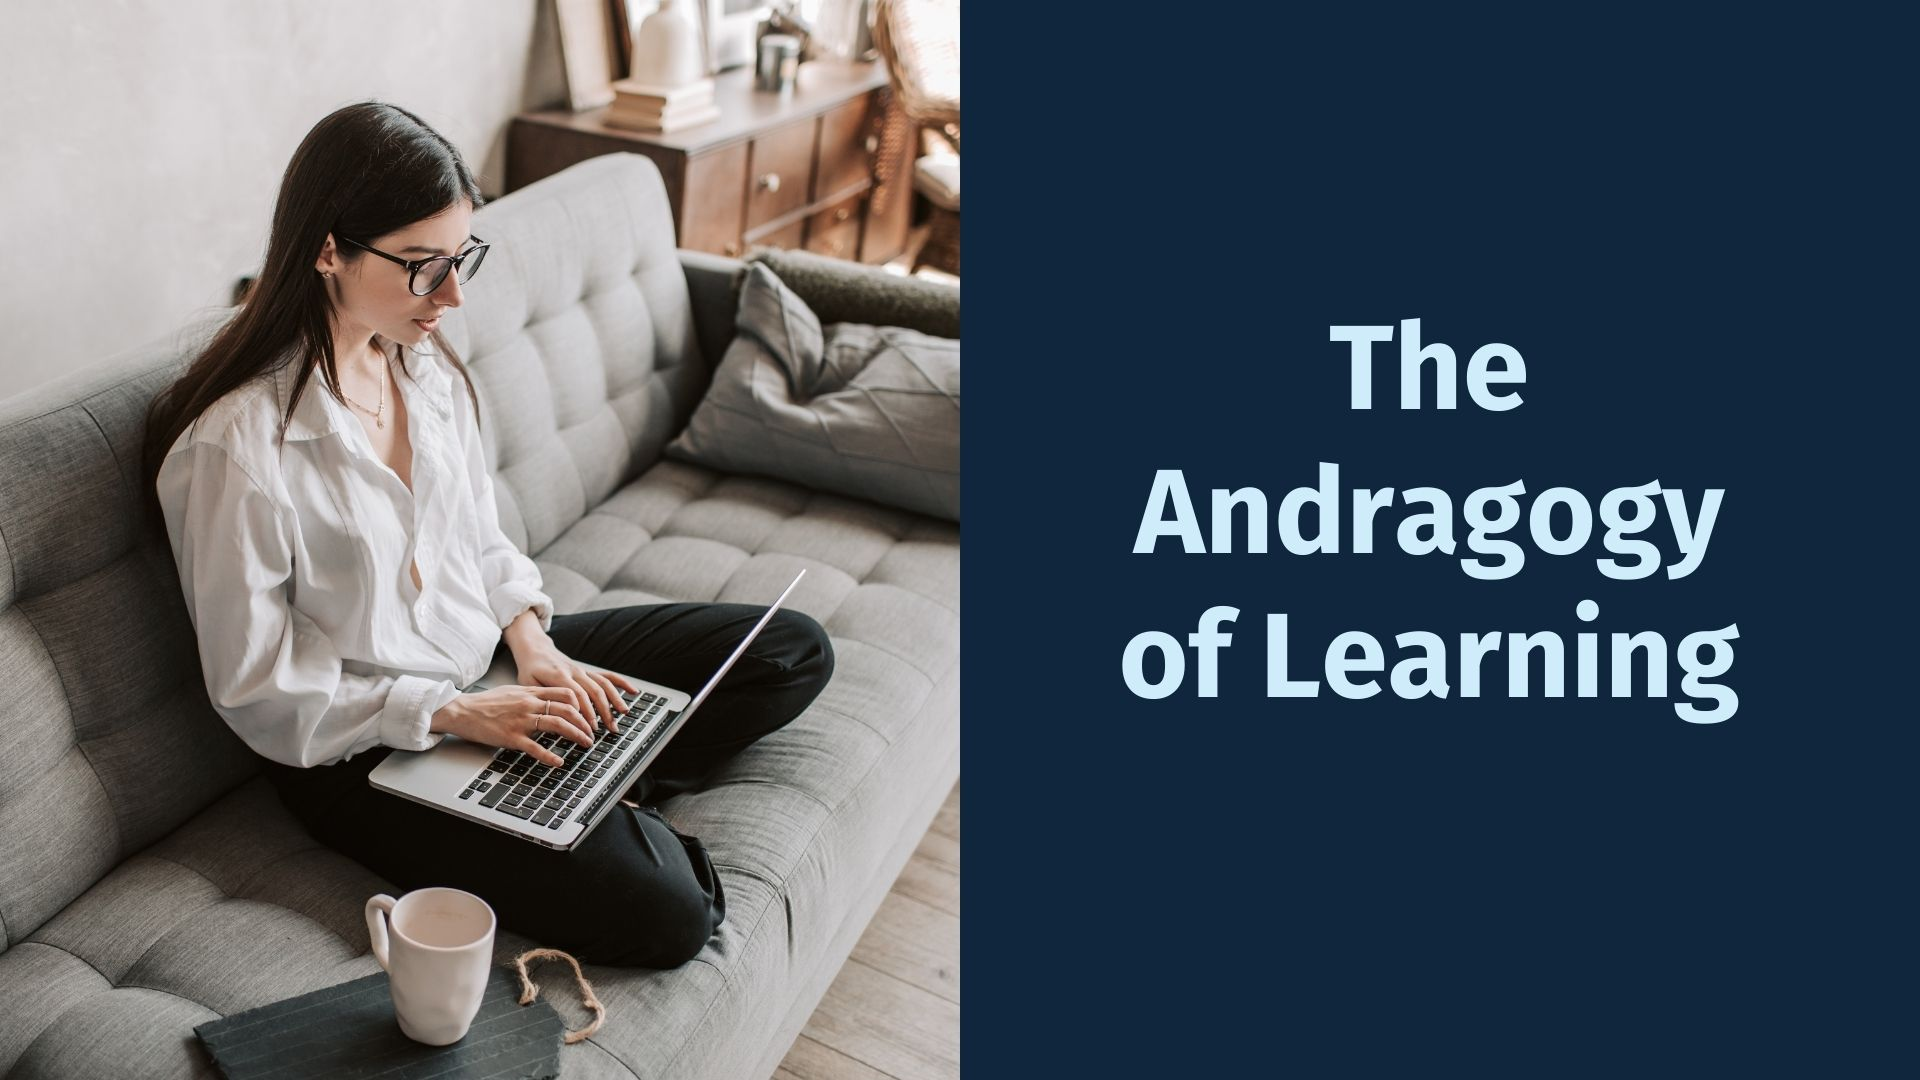 The Andragogy of Learning